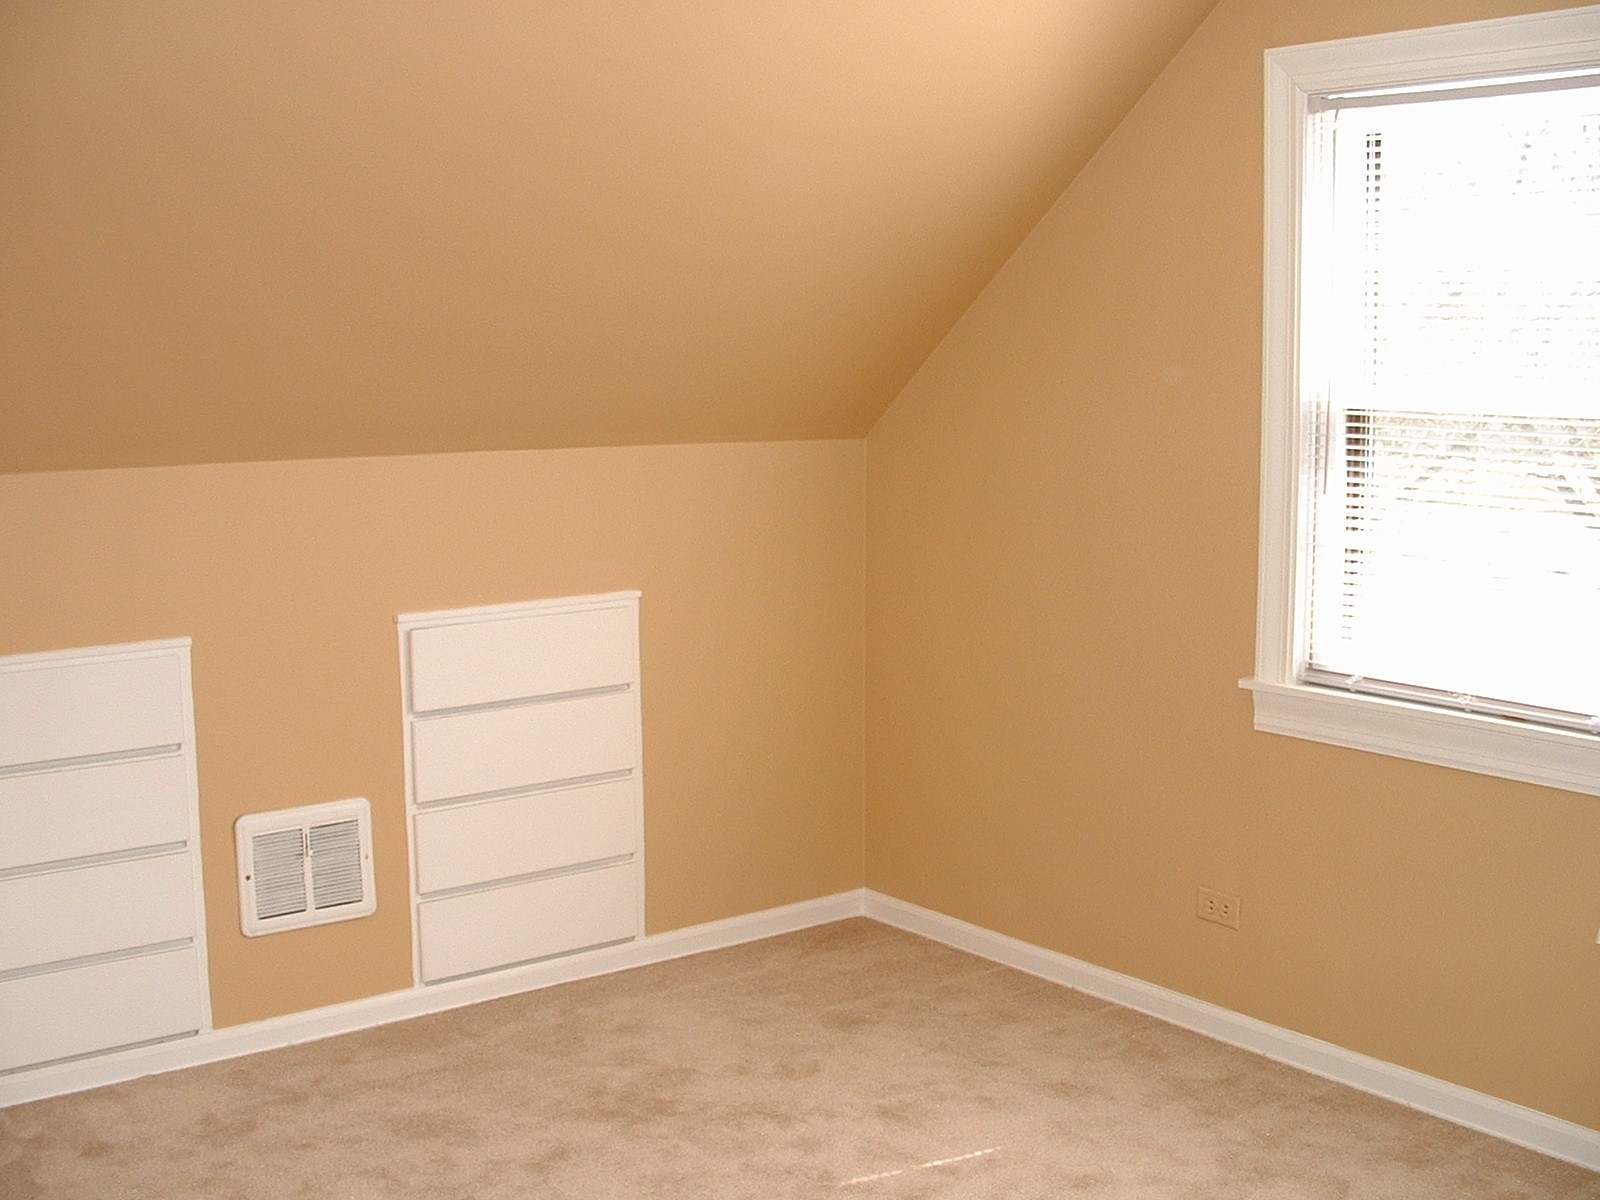 Bedroom Paint Colors Interior 1600 x 1200